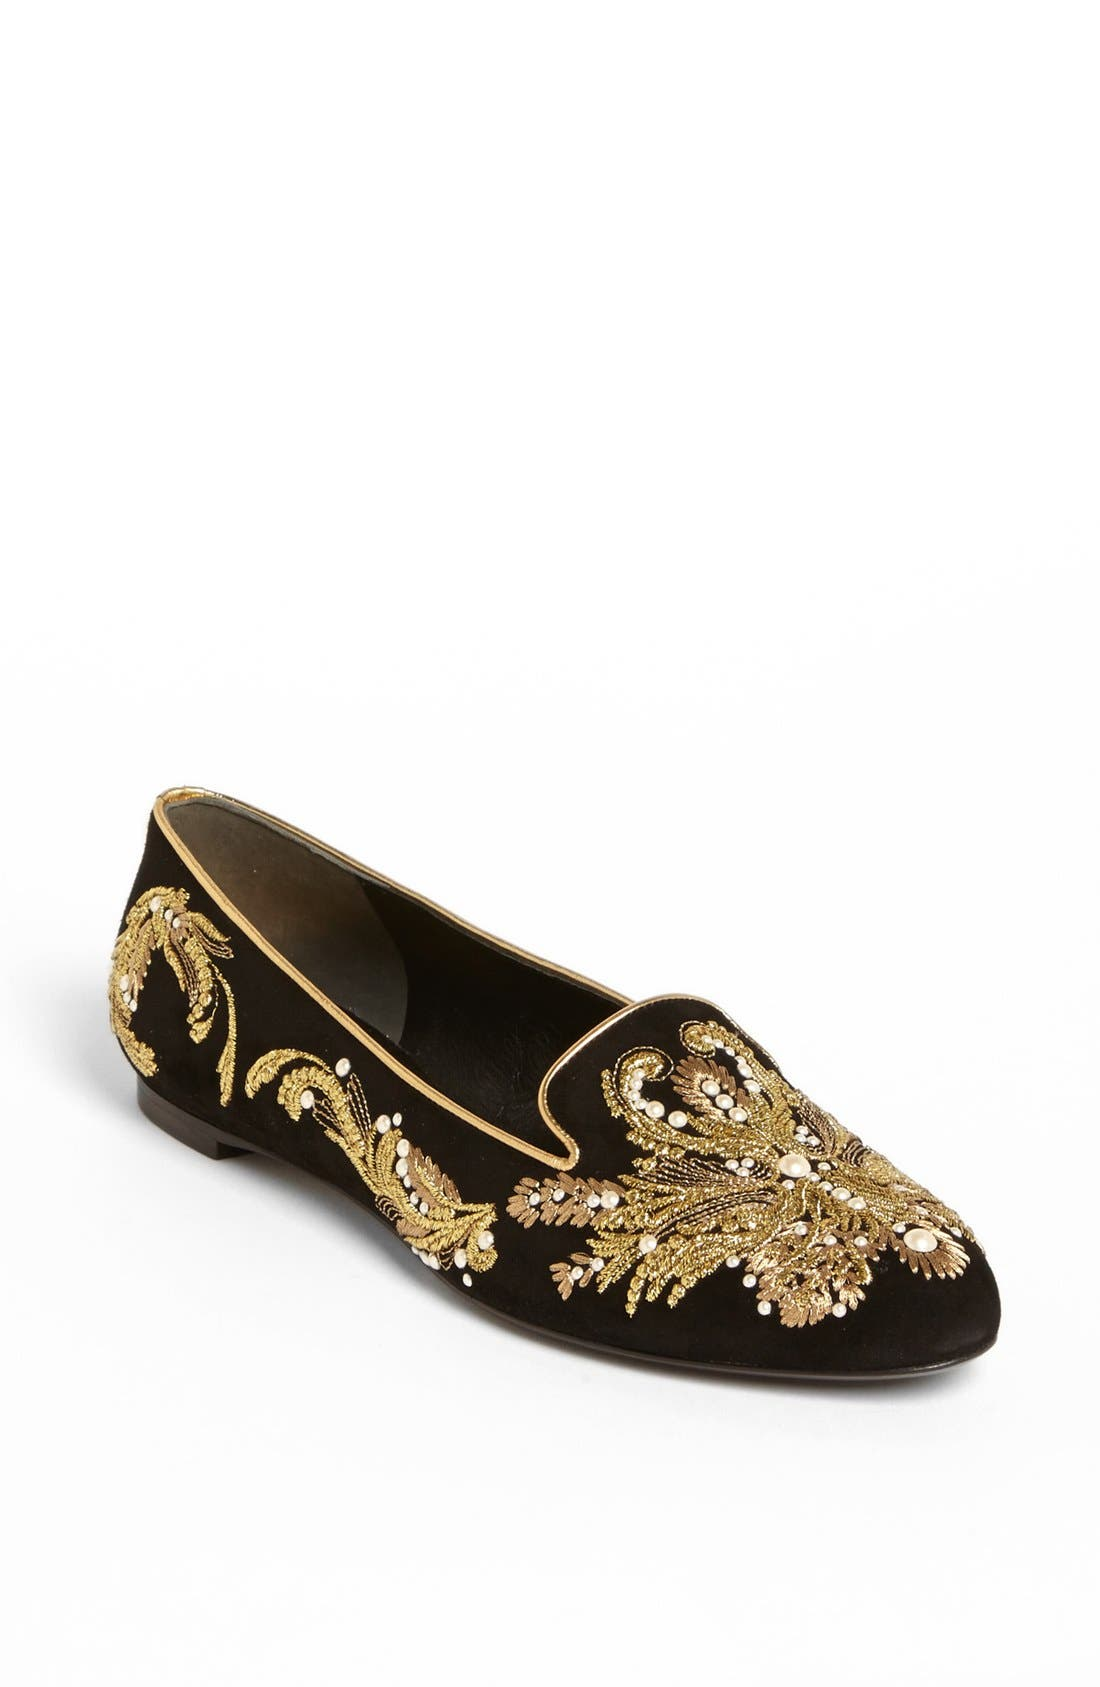 Alternate Image 1 Selected - Alexander McQueen Embroidered Flat